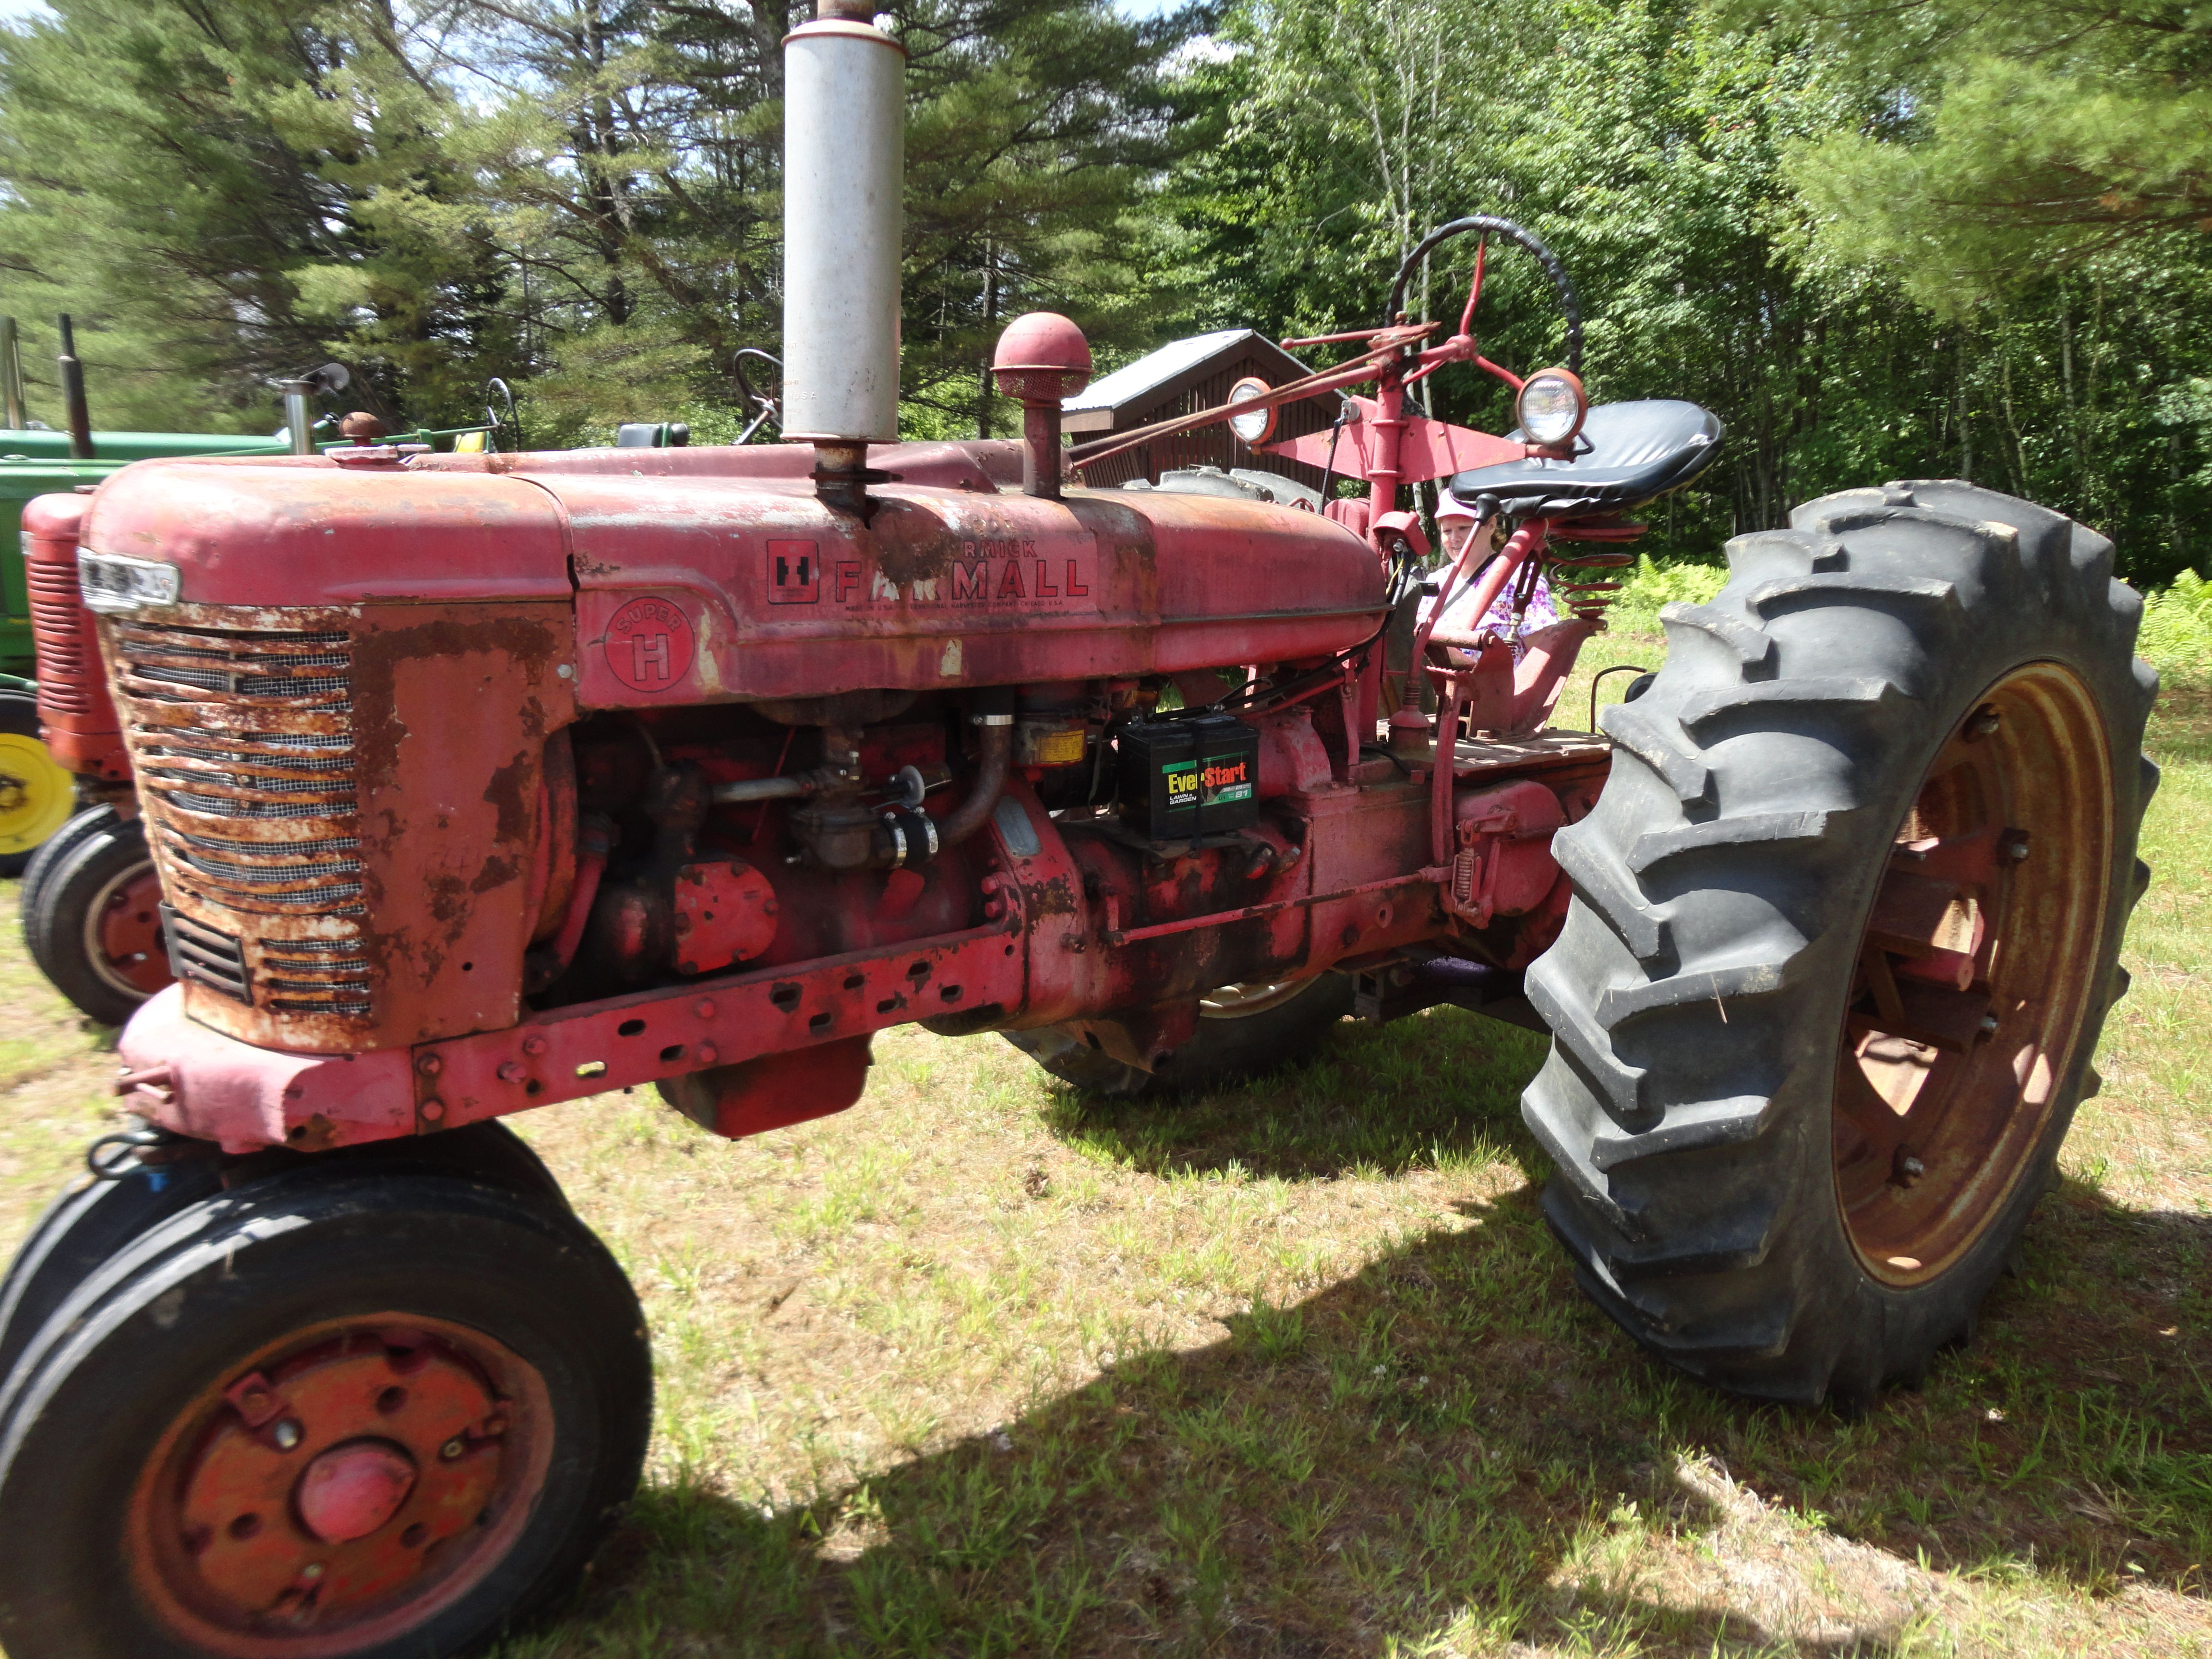 Craigslist Farm Tractors - Year of Clean Water